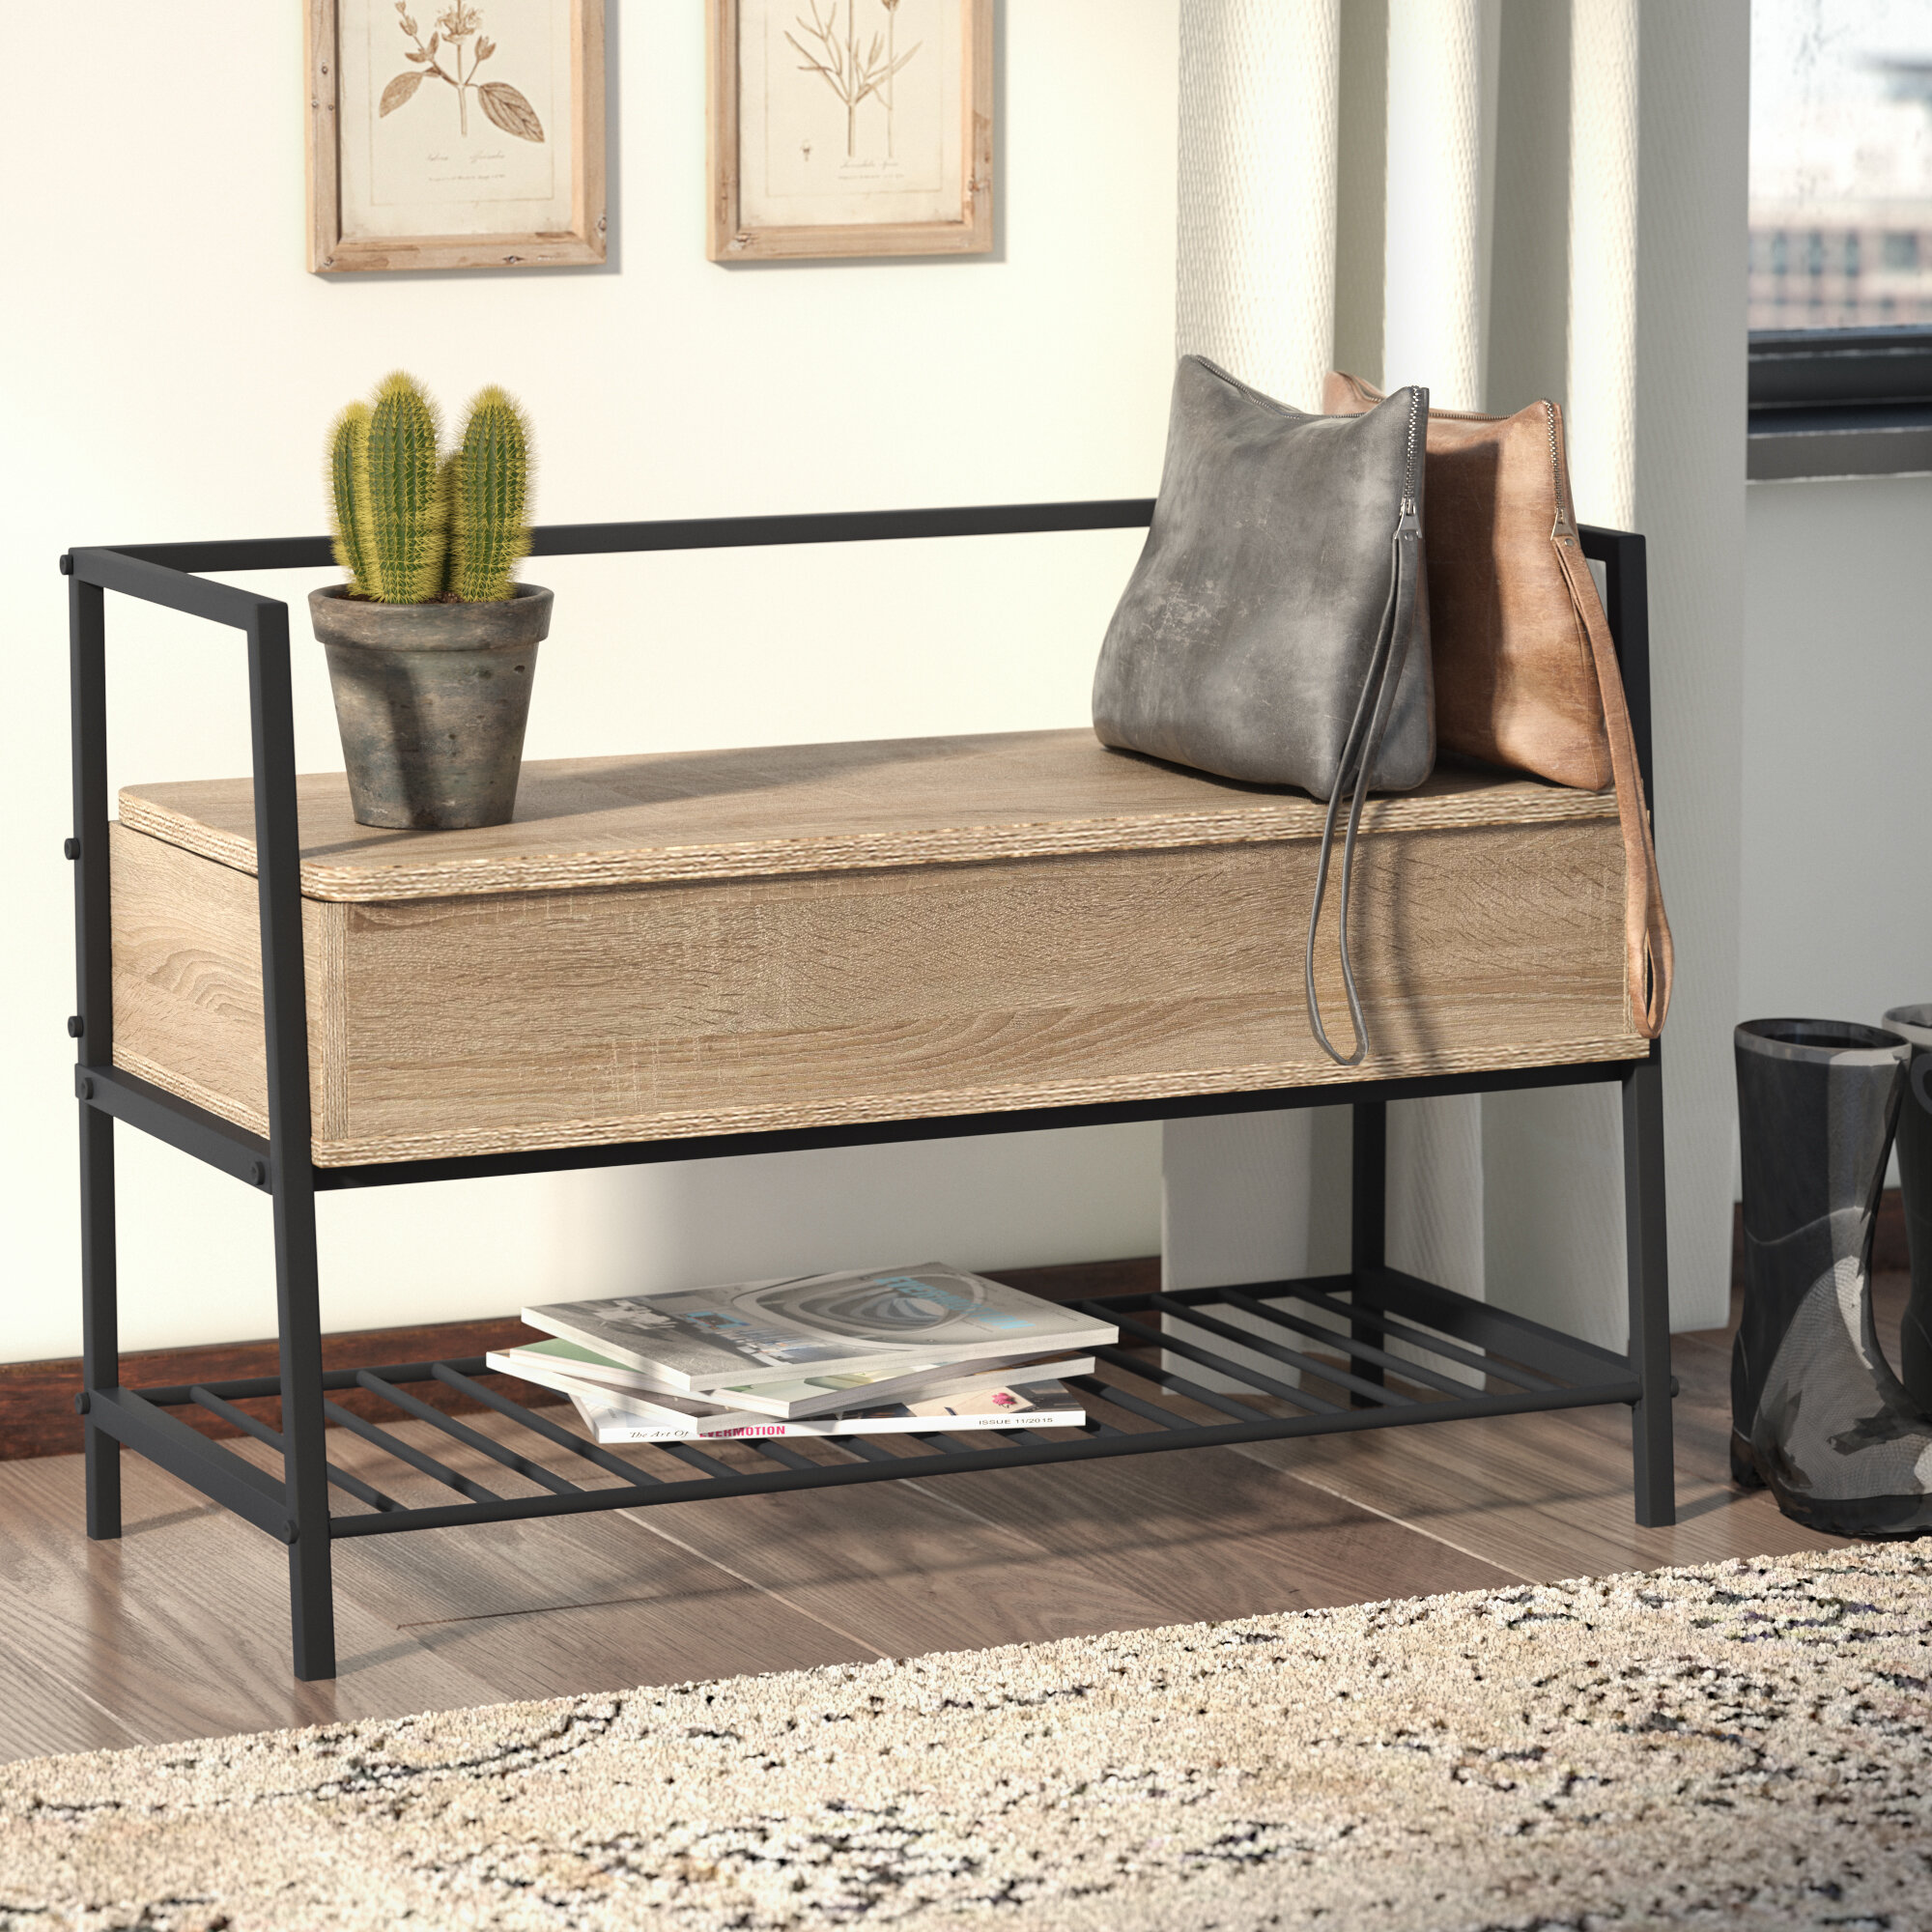 Laurel Foundry Modern Farmhouse Ermont Cubby Storage Bench Reviews Wayfair,Attractive Paint Color For Small Bedroom Walls